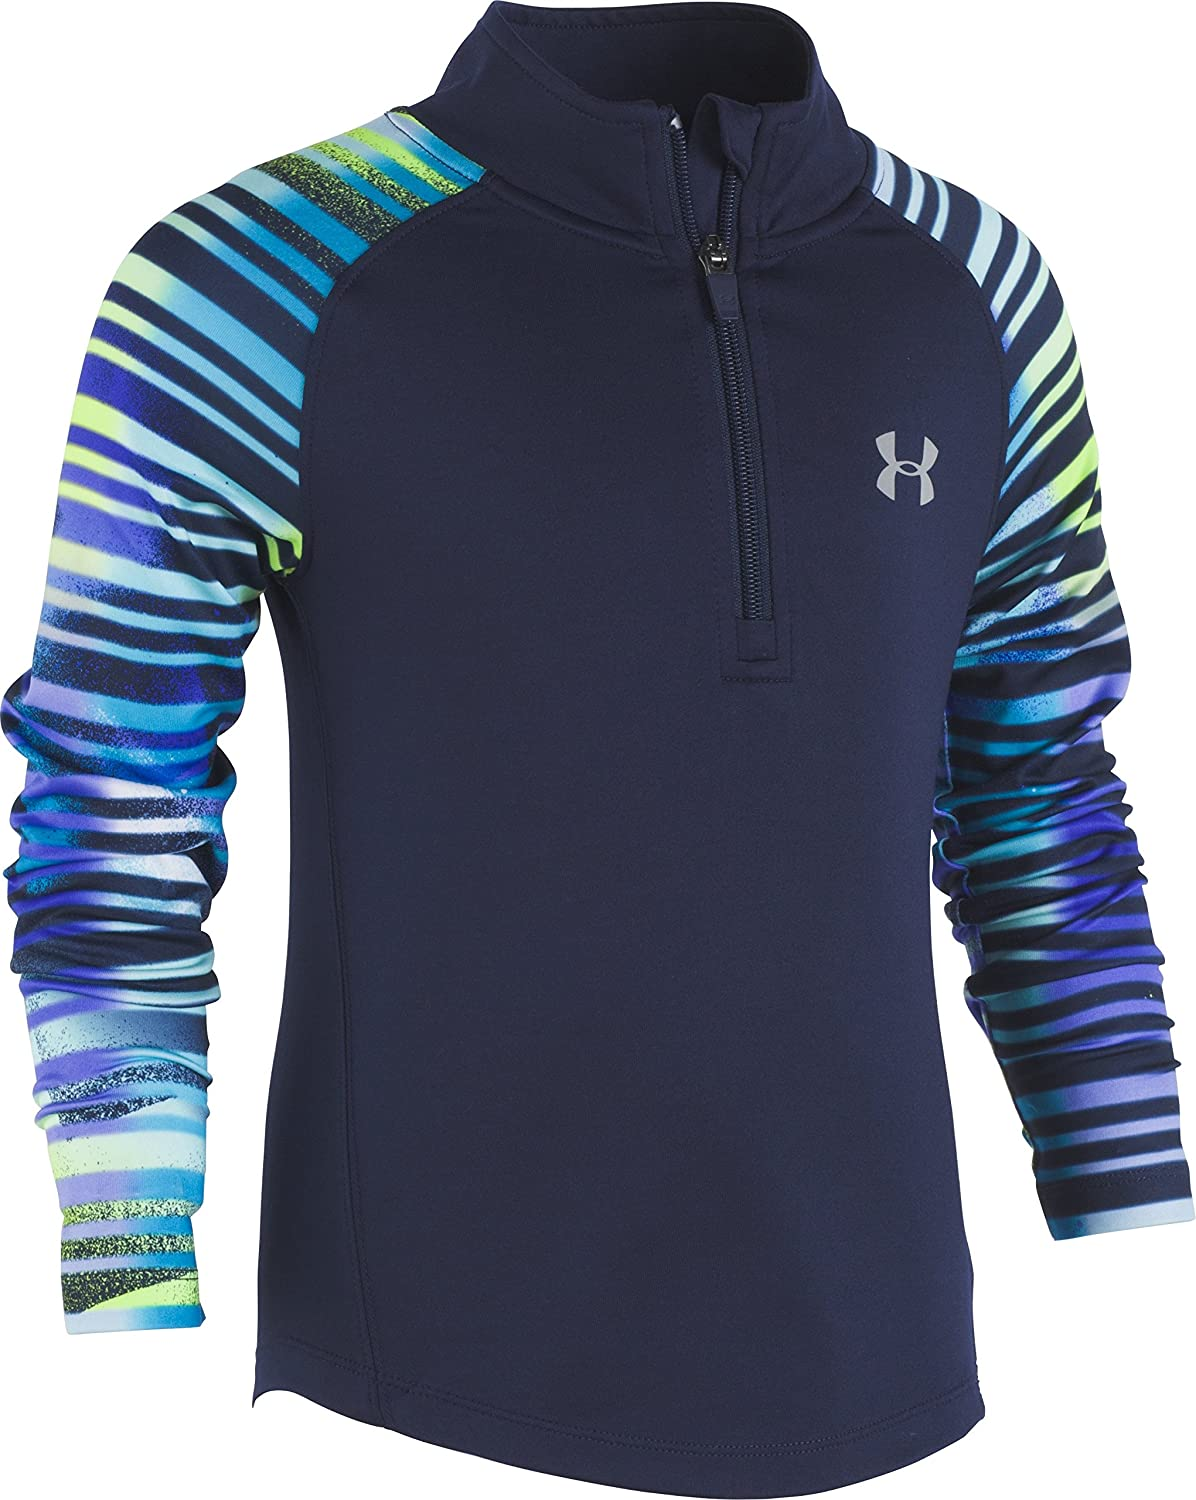 Under Armour Girls' Stripy 1/4 Zip Sweater